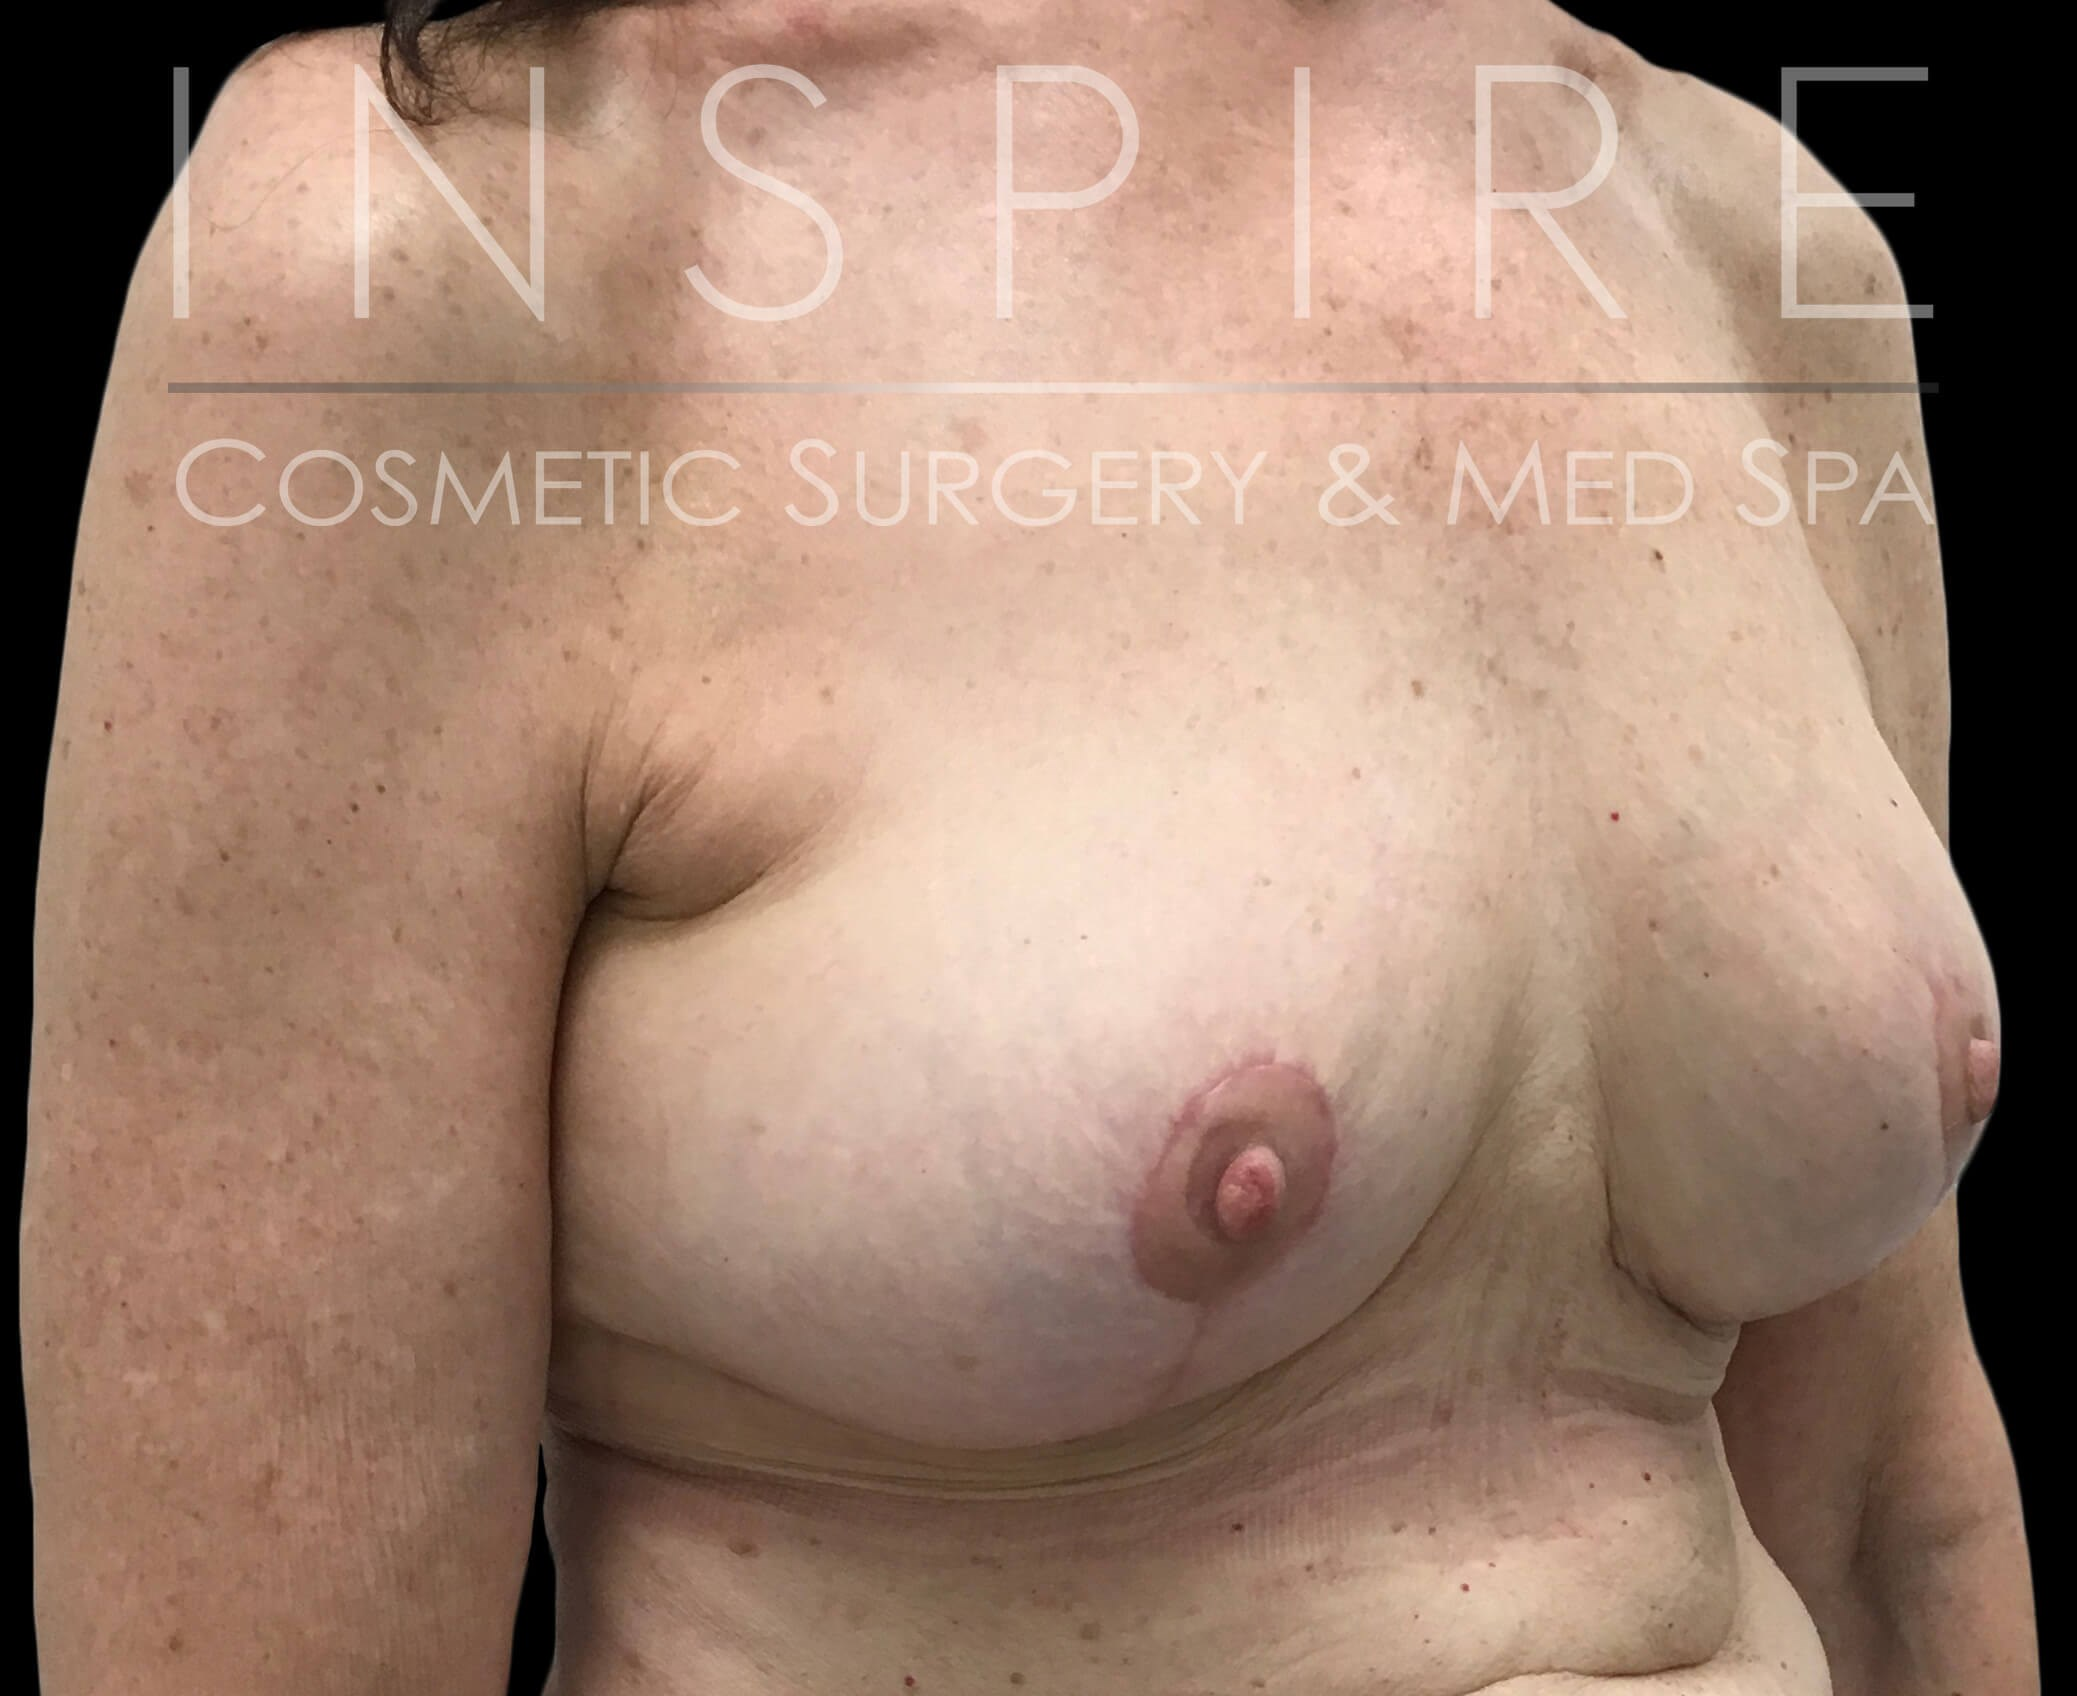 Implant Removal & Breast Lift After